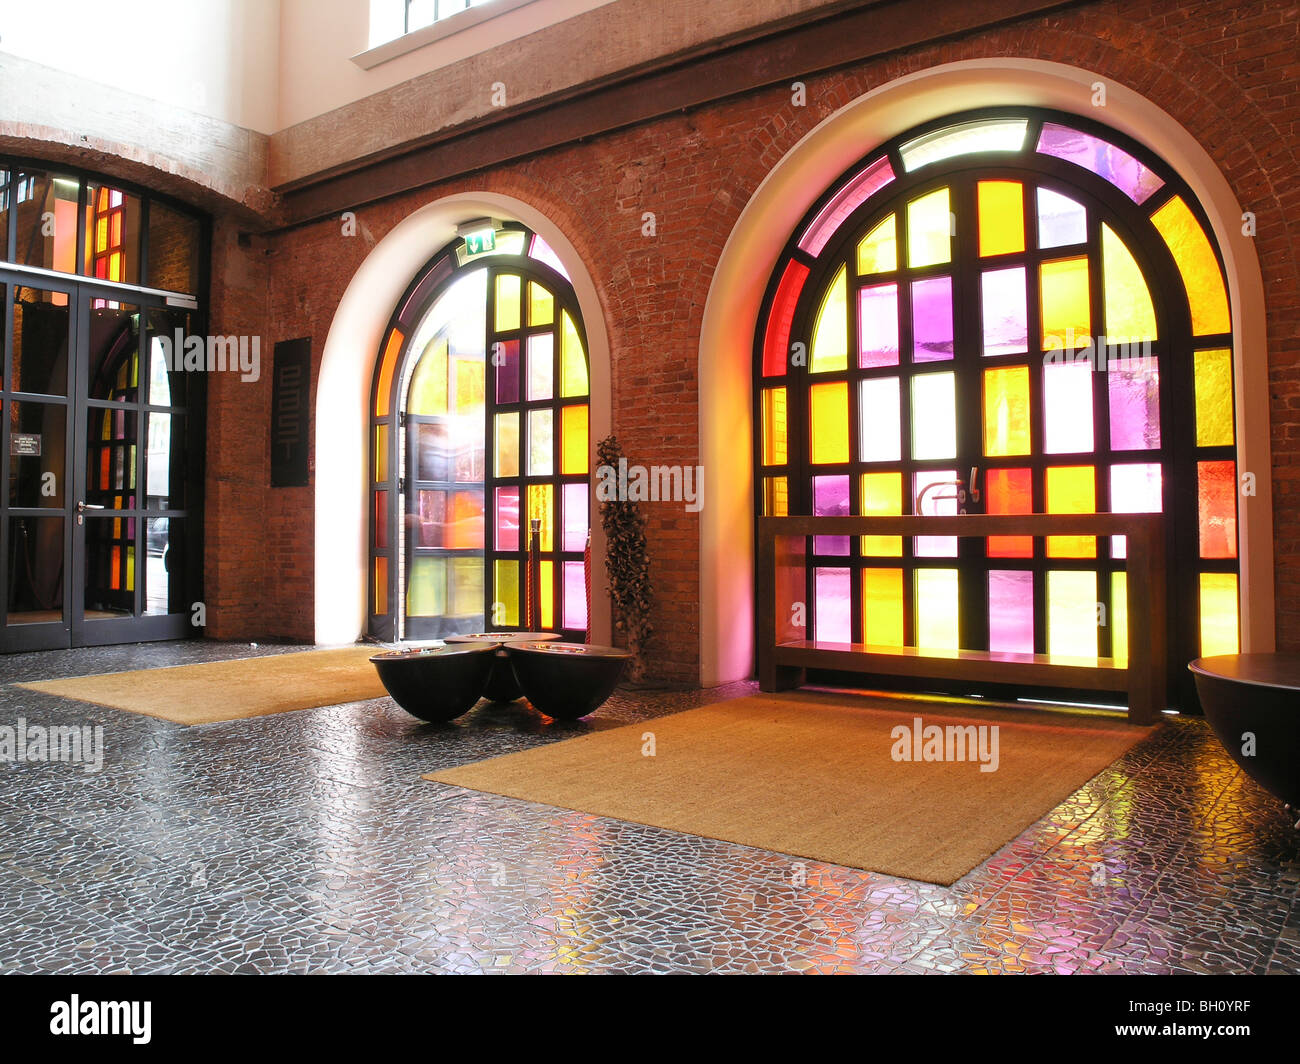 East Hotel Hamburg Entrance To The East Hotel, Hanseatic City Of Hamburg, Germany Stock Photo - Alamy